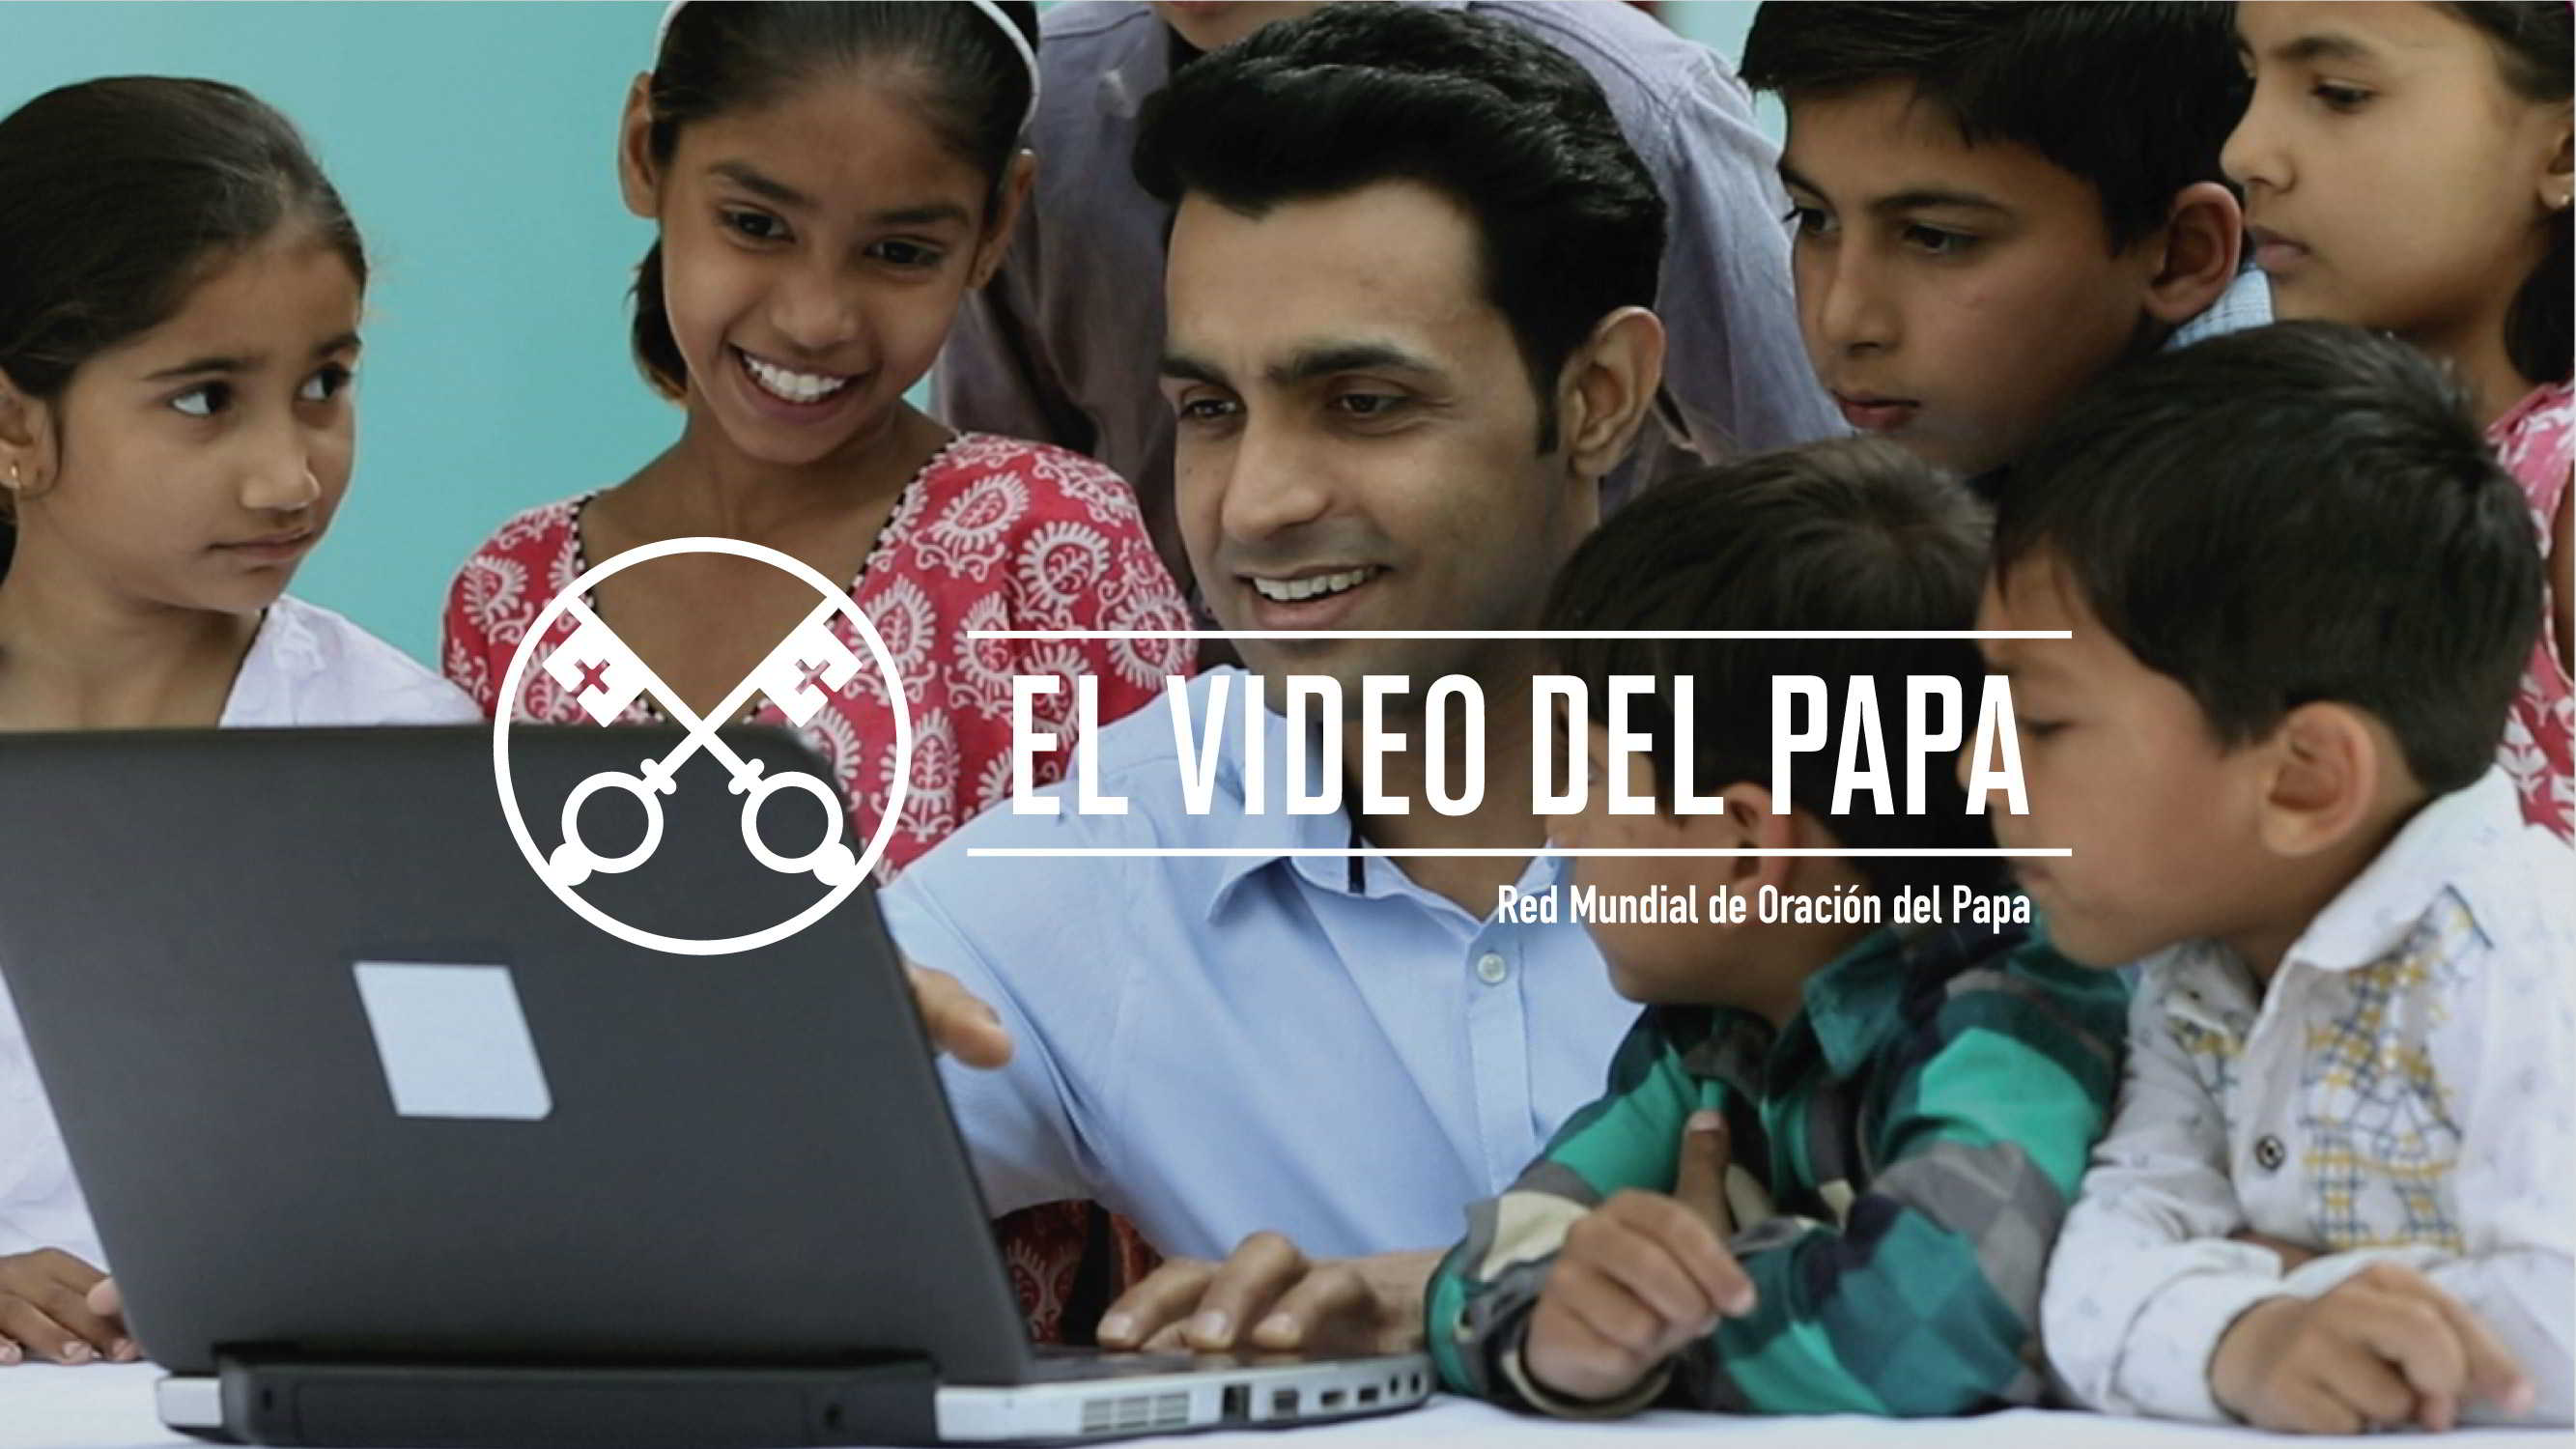 Official-Image-The-Pope-Video-6-JUN-Social-Networks-2-Spanish